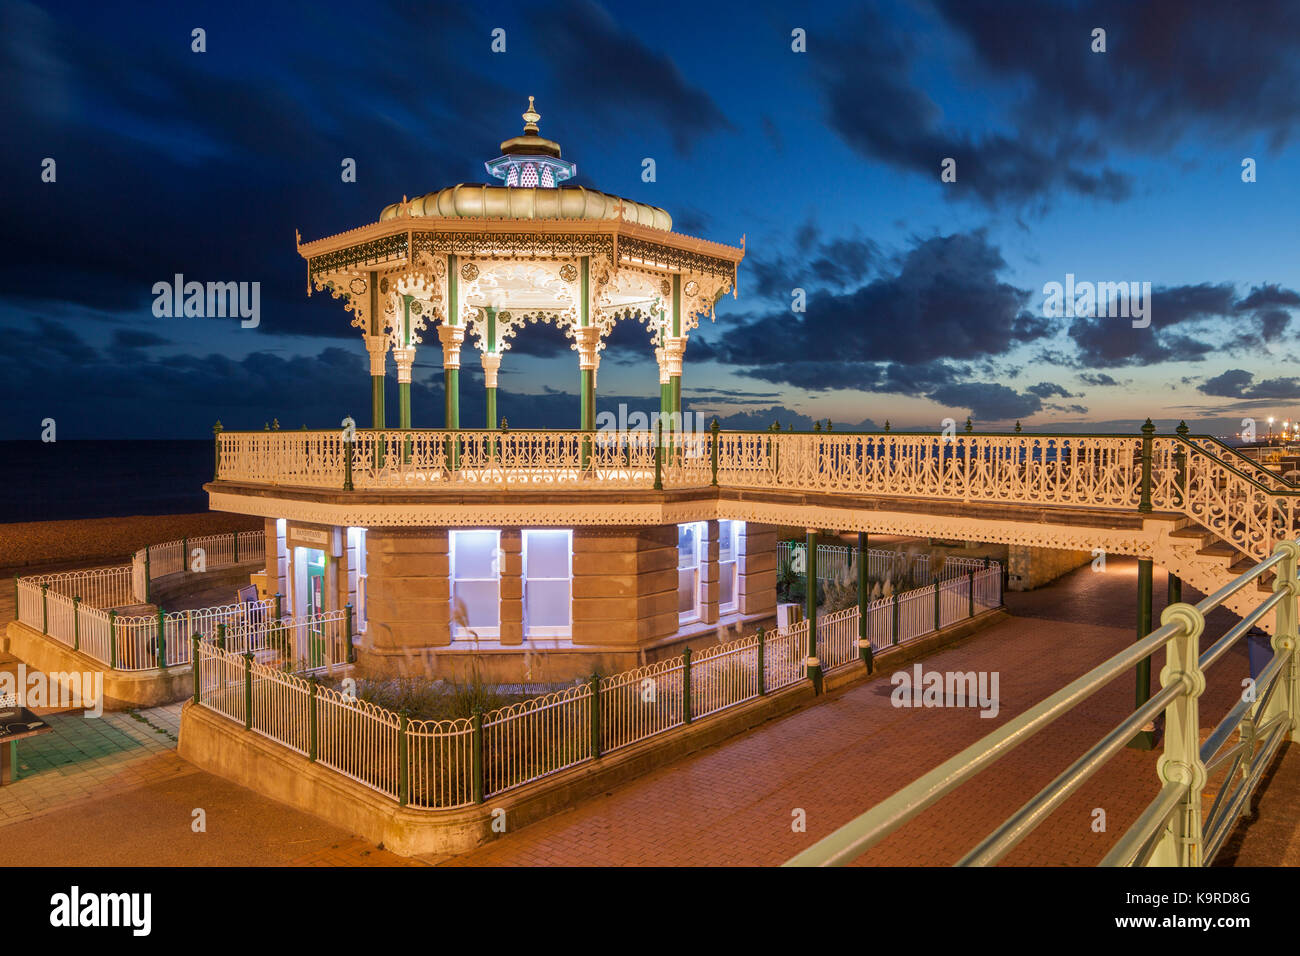 Evening at Brighton Bandstand, East Sussex, England. - Stock Image